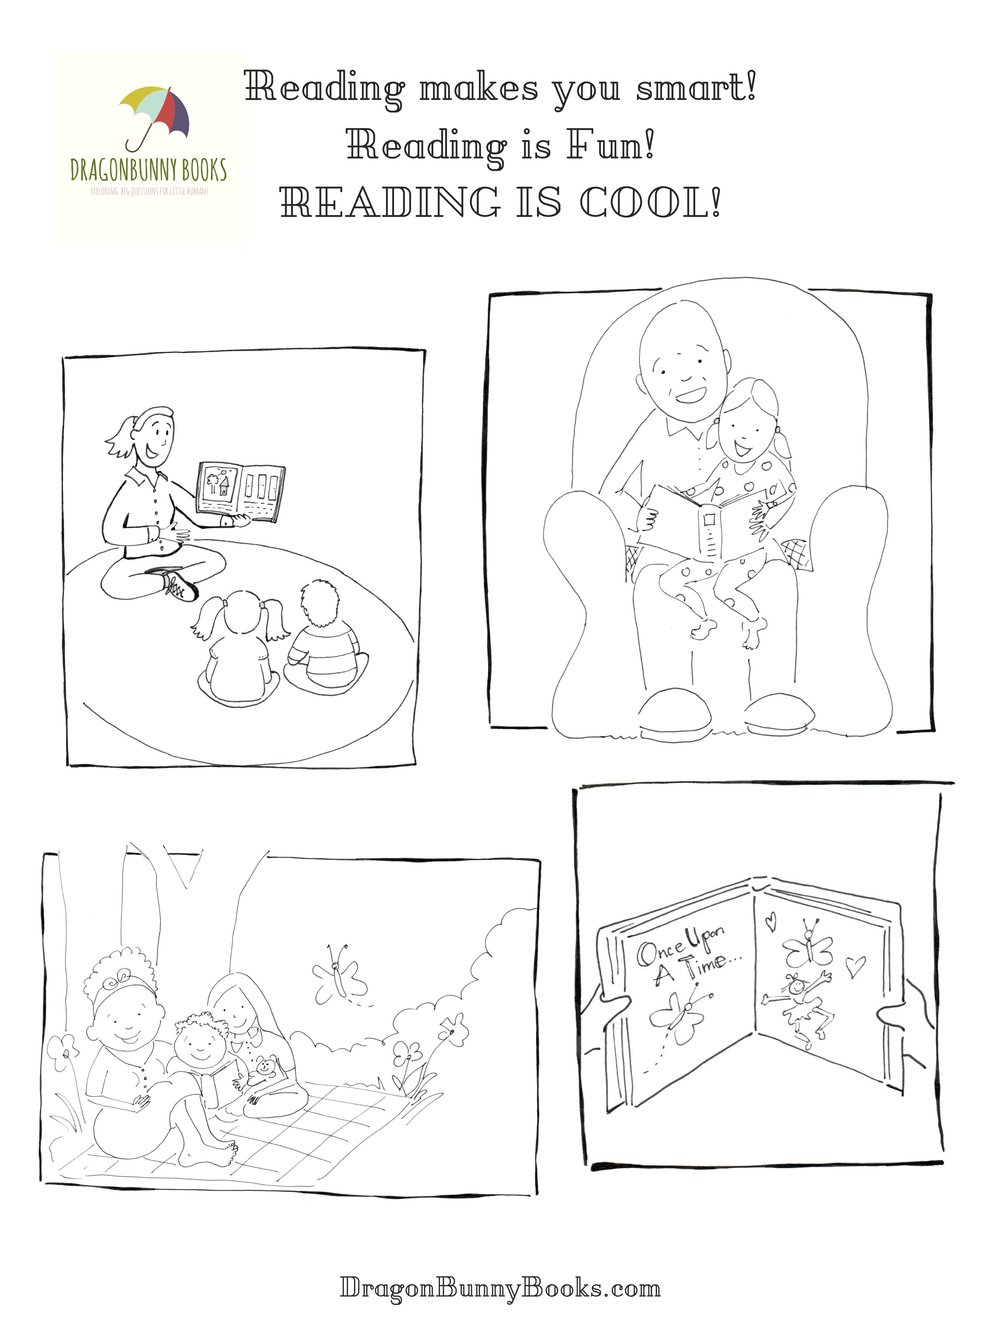 Reading makes you smart! copy.jpg